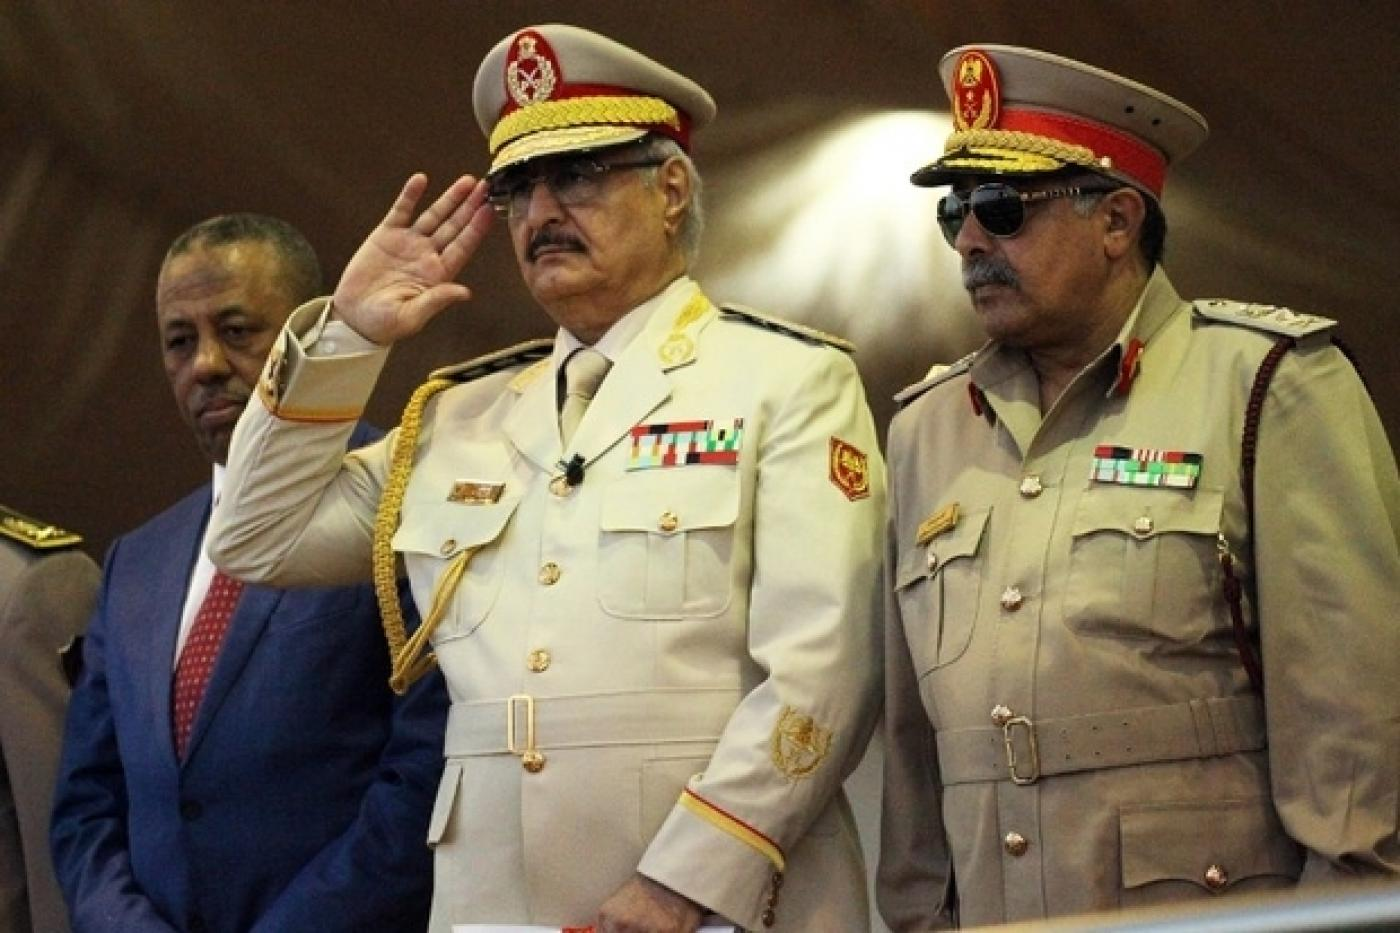 Prospects For Resolving Conflict And Stabilizing Political Situation In Libya